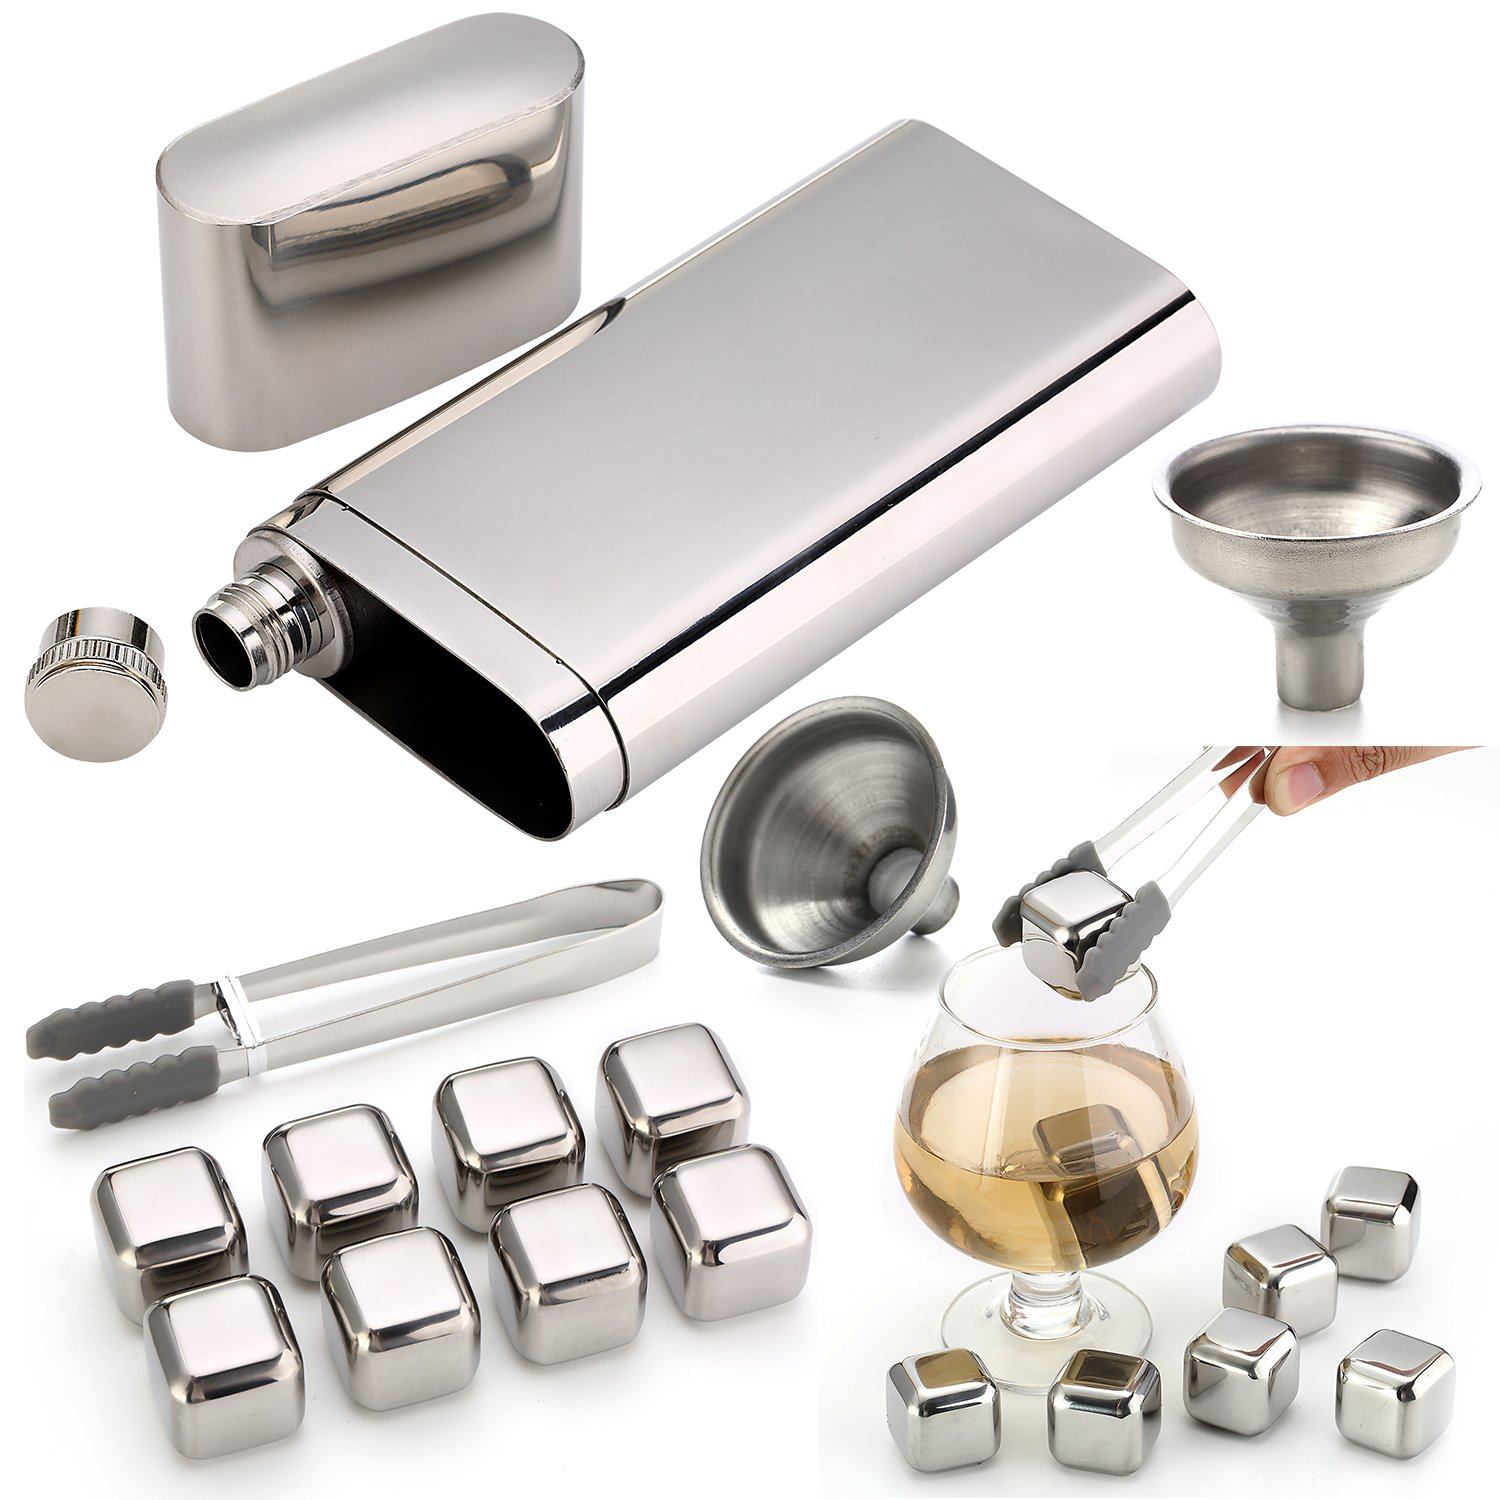 Stainless Steel Chilling Rocks / Stones (8) + Dual Cigar Flask (1) [Gift Set] + Funnel (1) + Tongs (1) [FDA Approved] by YazyCraft (Image #6)